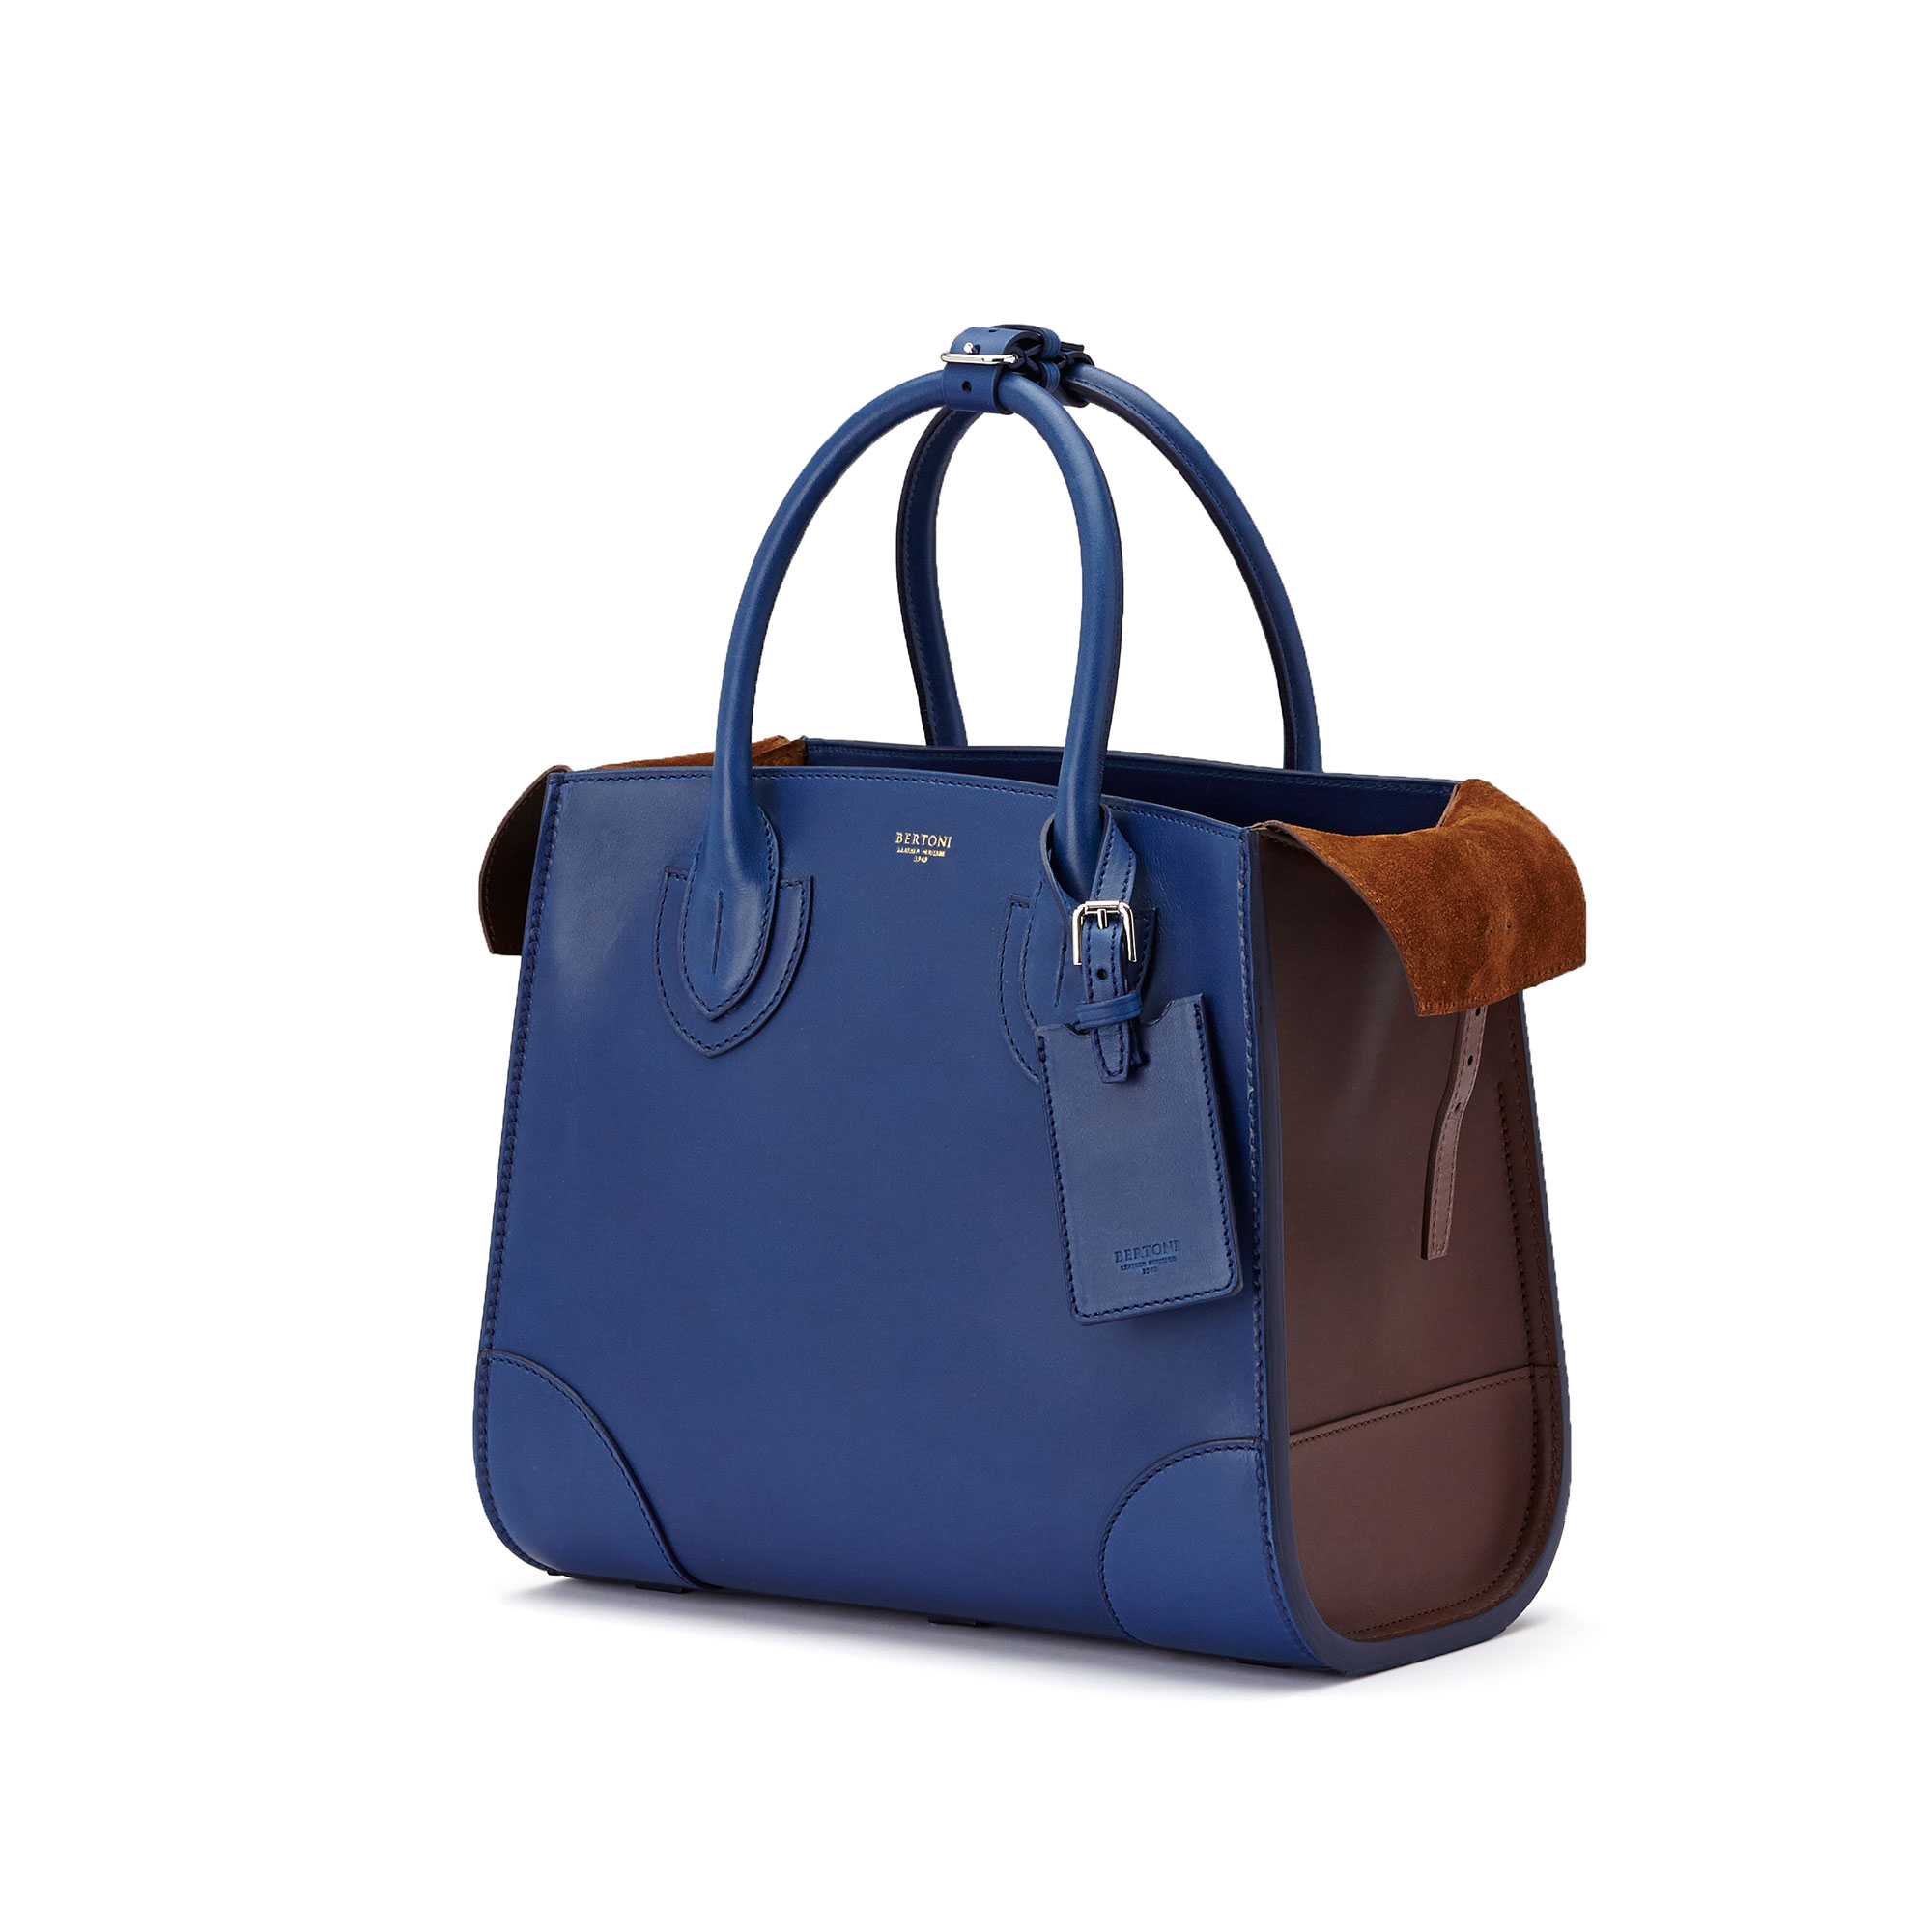 The blue, terrabruciata and brown french calf Darcy medium bag by Bertoni 1949 04